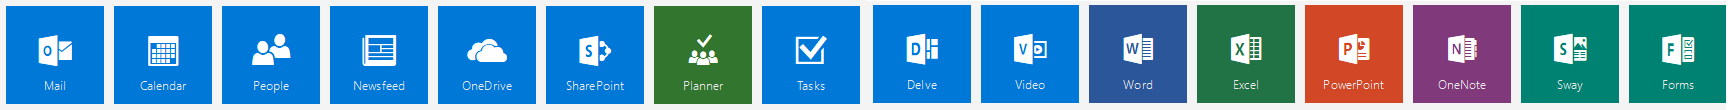 email office 365 icons banner